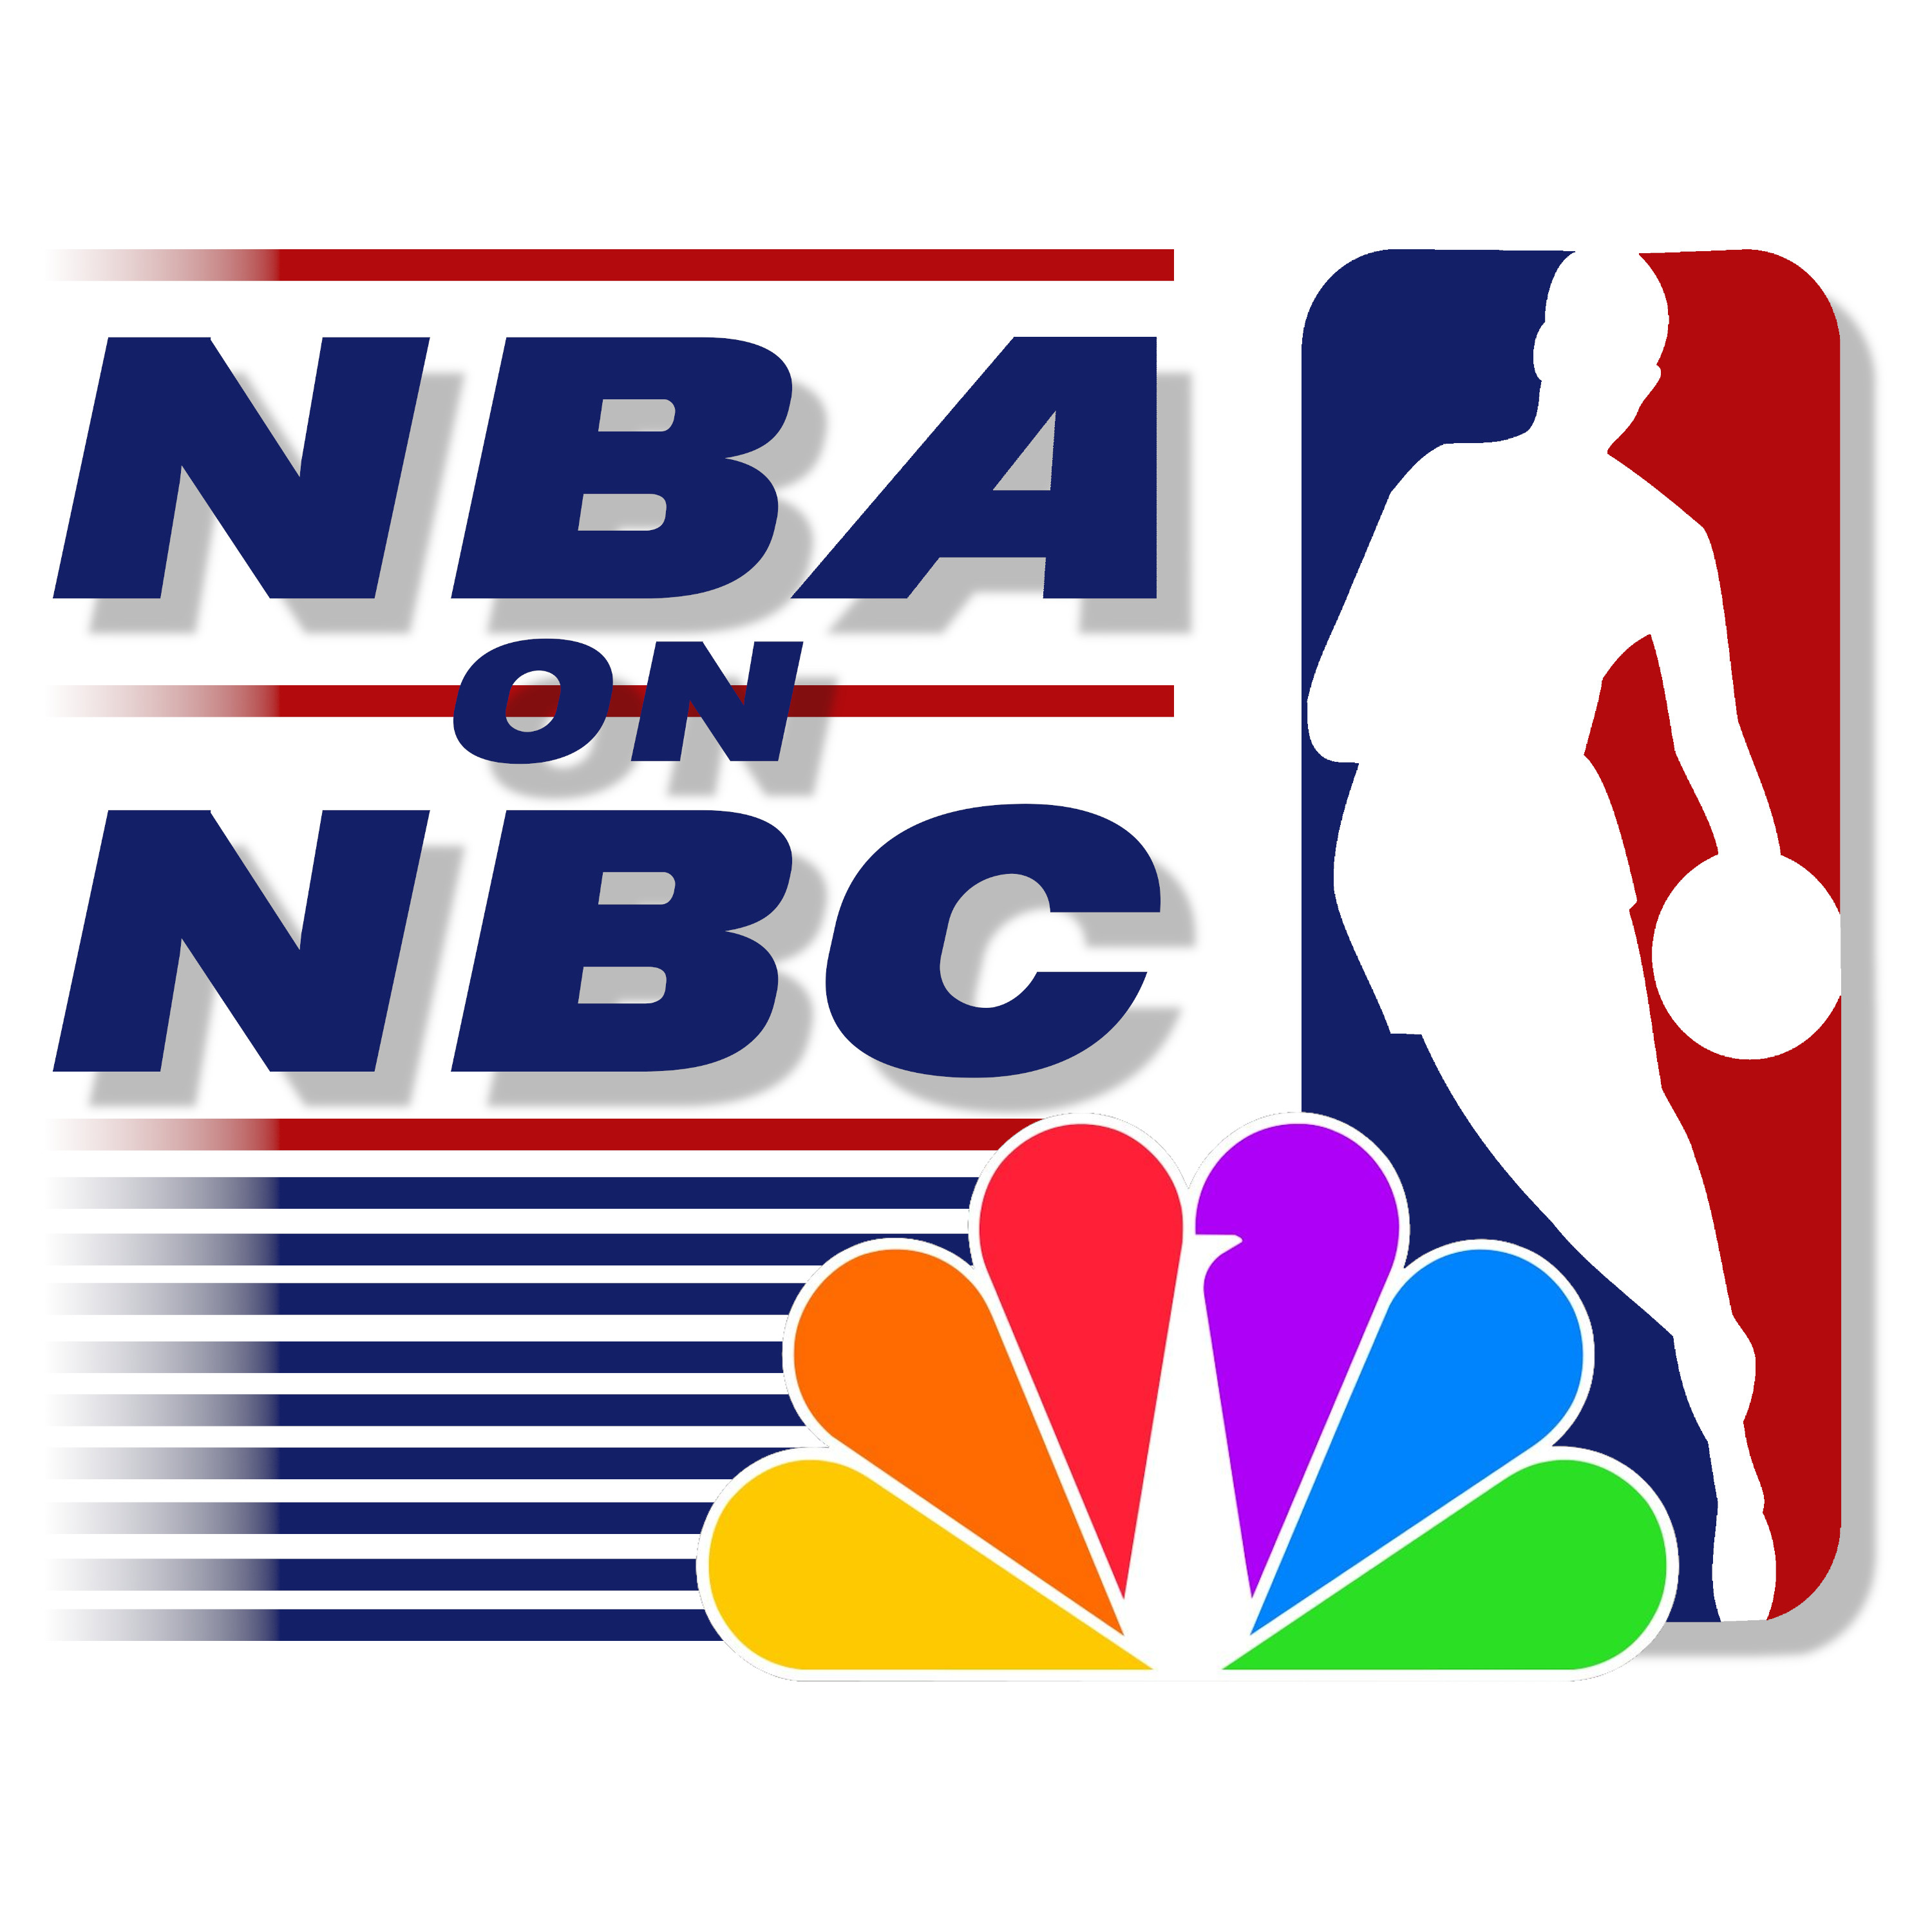 NBA on NBC (90s) Wipe, Studio, and Texture